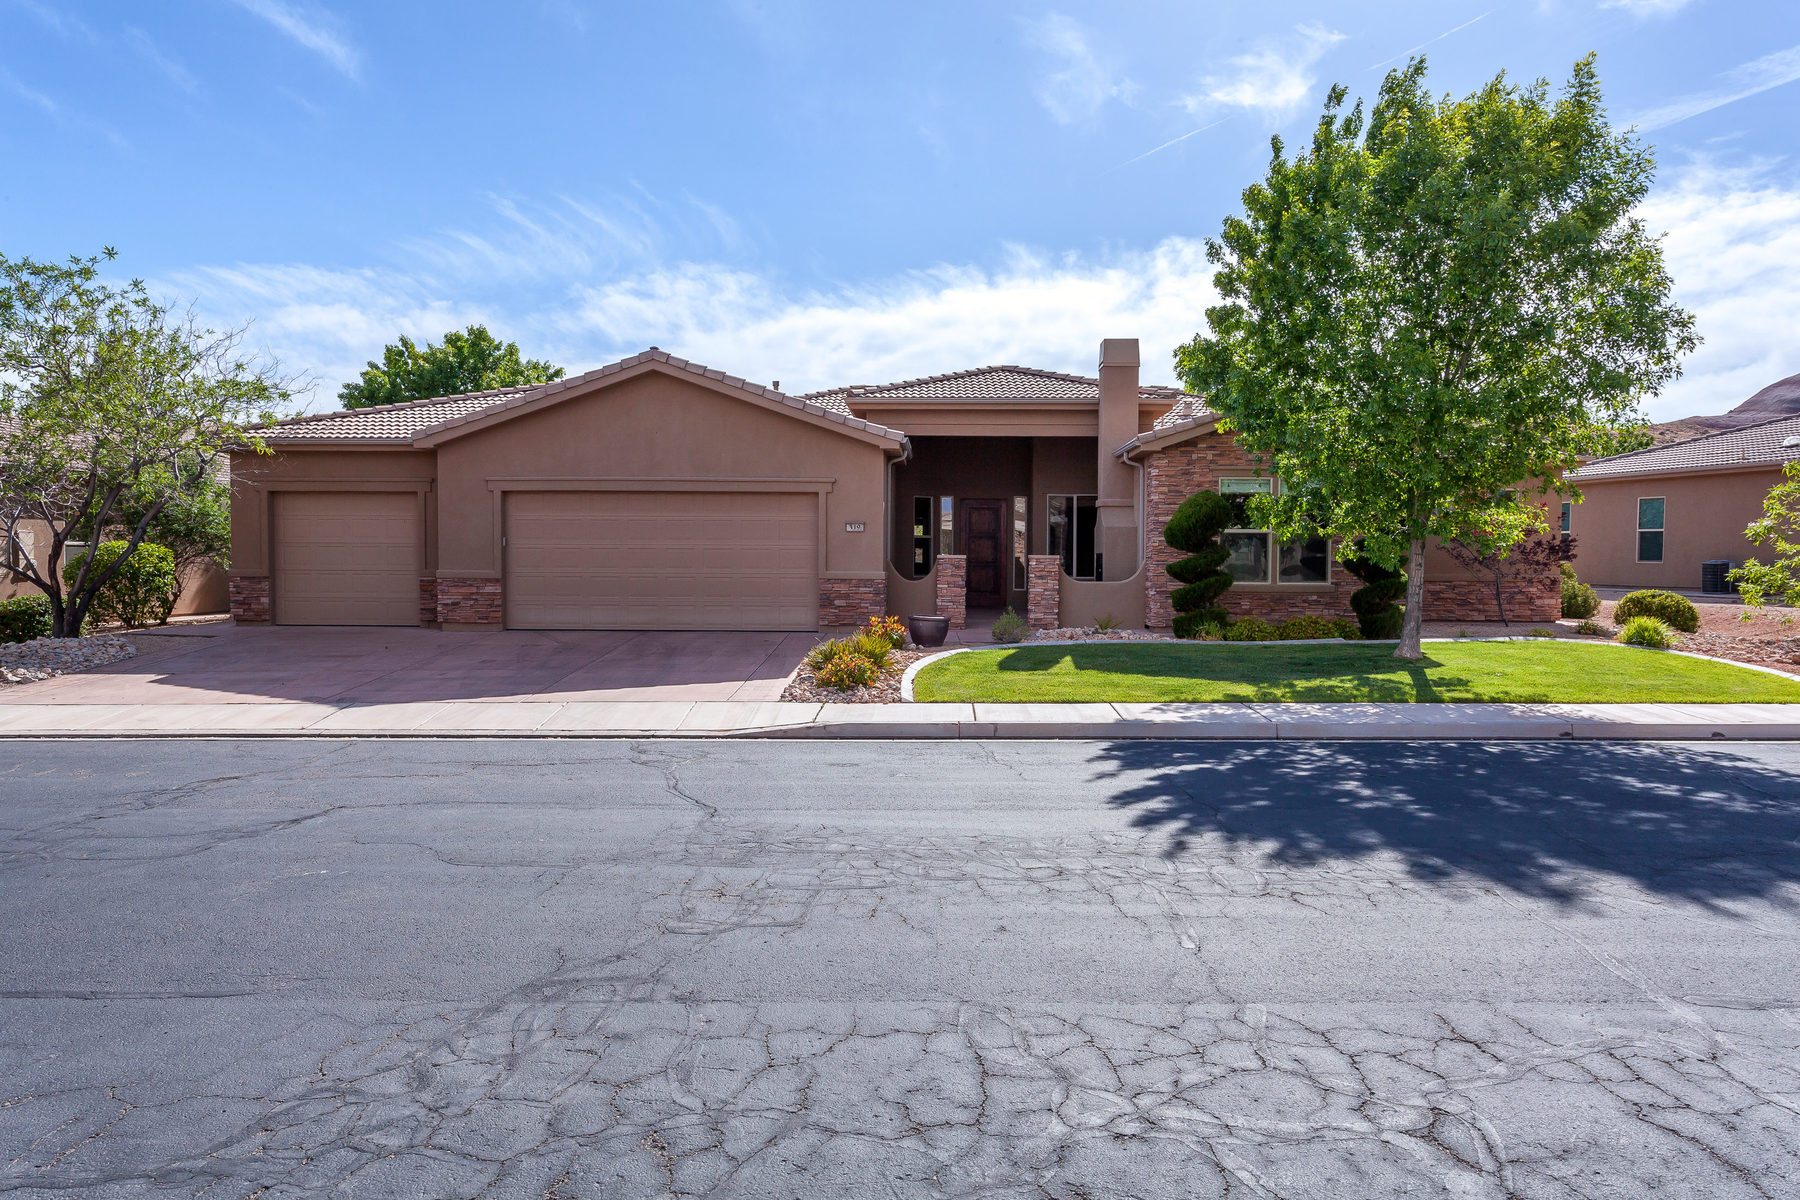 Moradia para Venda às Immaculate Sunbrook Home with Casita 319 Lost Creek Dr St. George, Utah, 84770 Estados Unidos